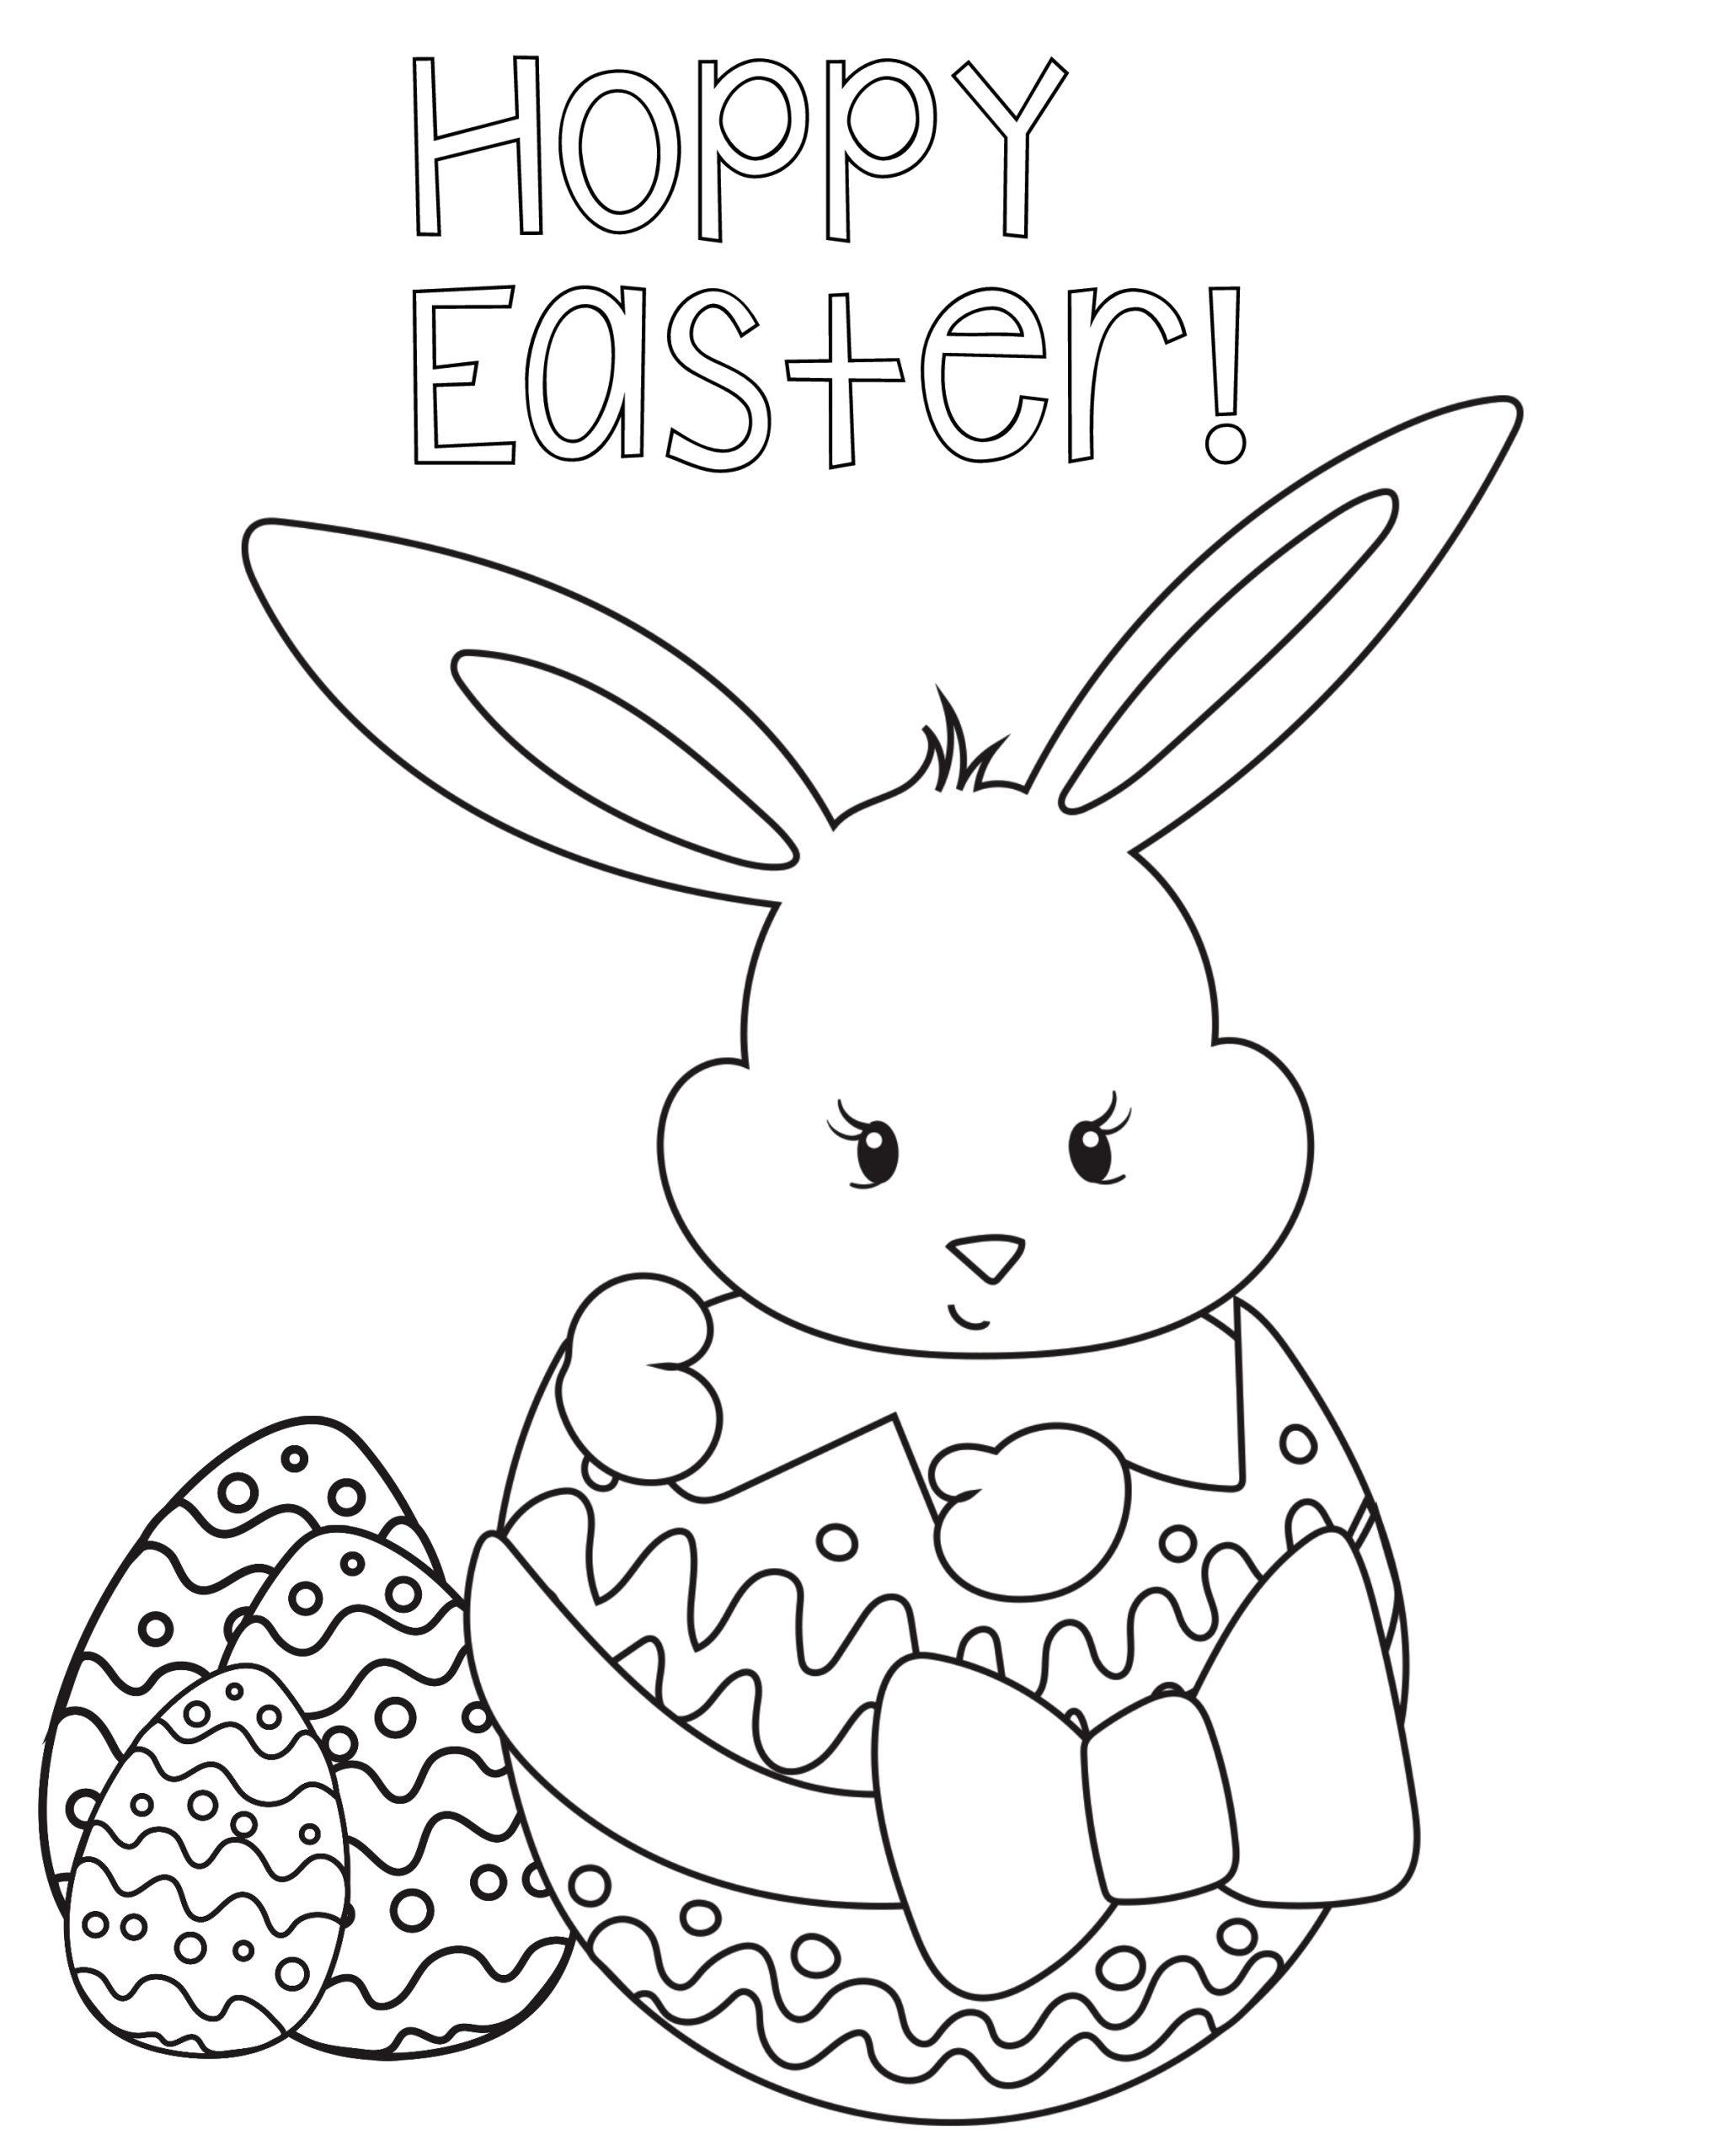 Easter Coloring Pages for Kids to Print Happy Easter Coloring Pages Best Coloring Pages for Kids